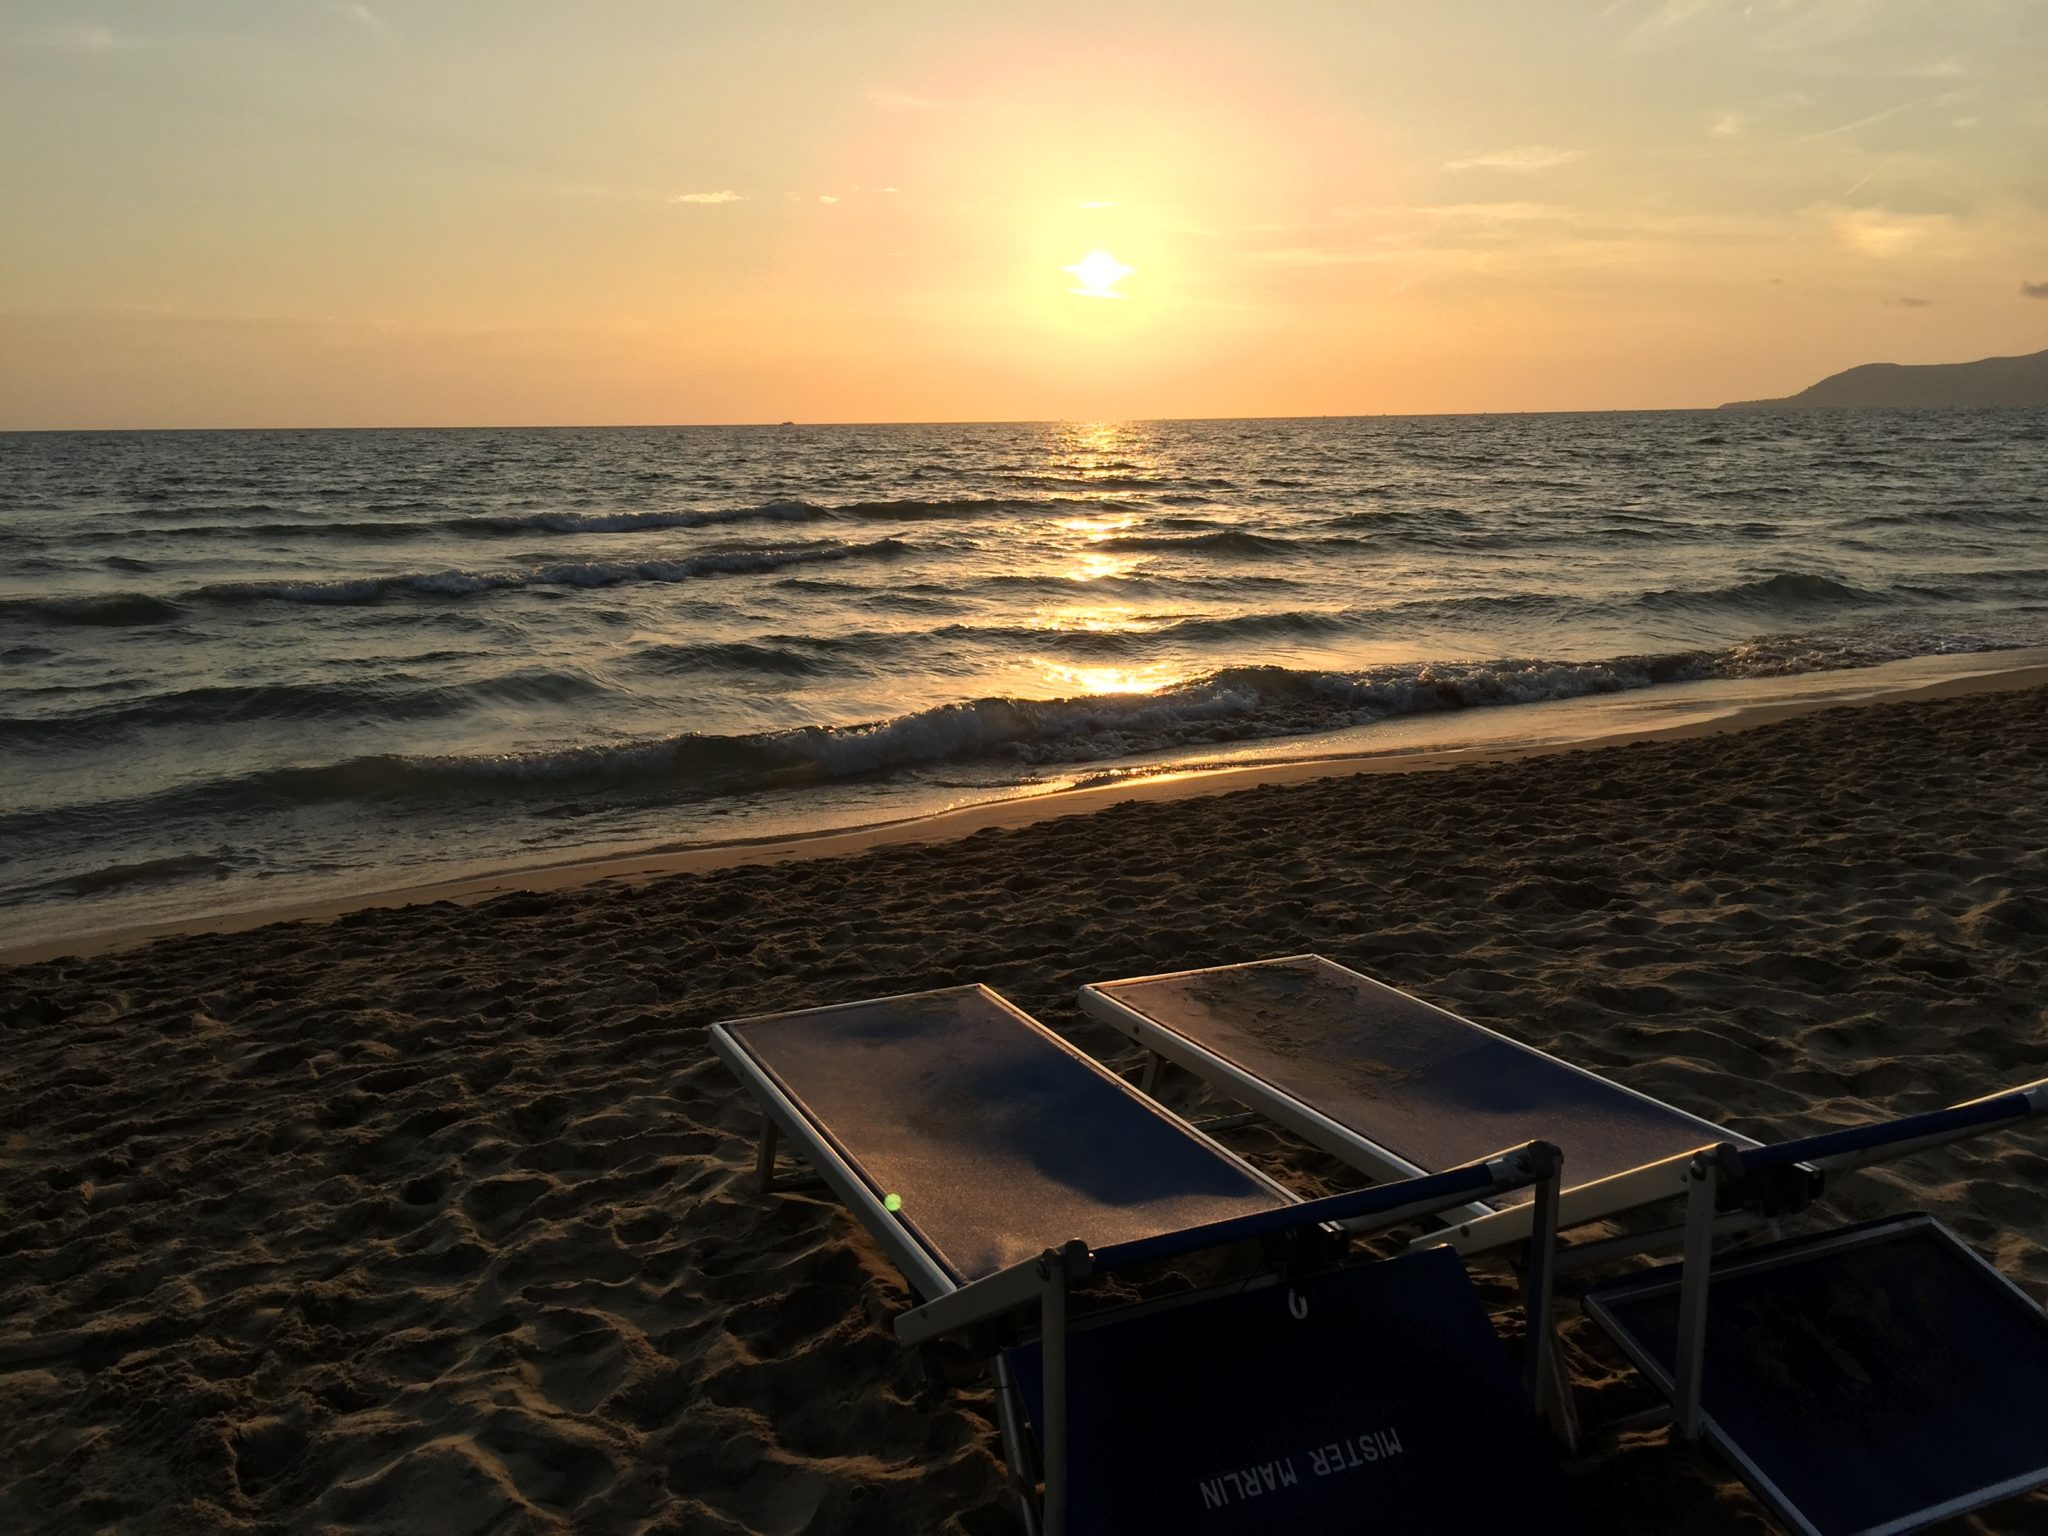 IMG_7349 spiaggia